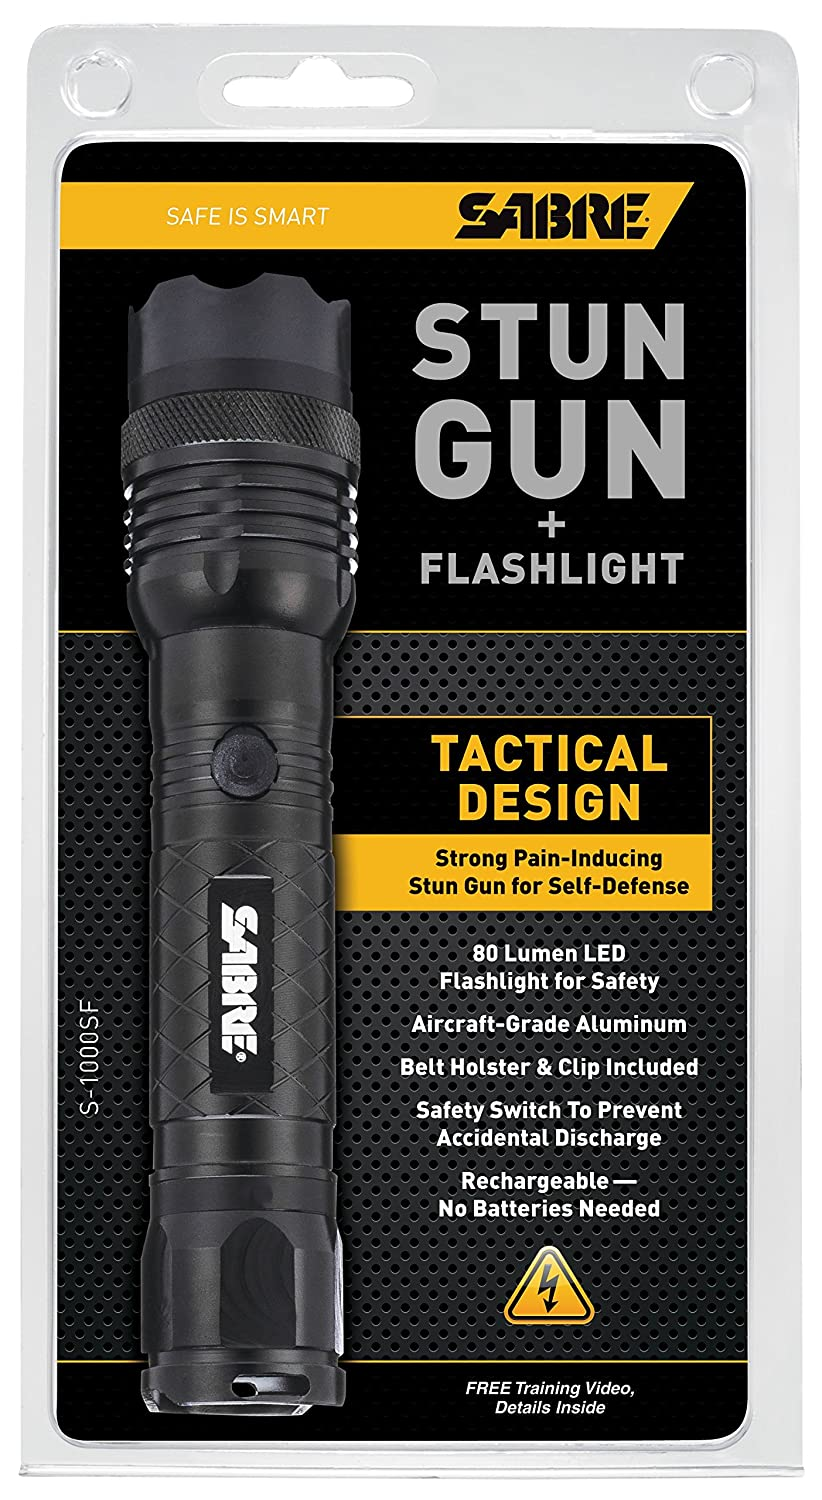 91znHE8wKaL._SL1500_ amazon com sabre tactical stun gun & led flashlight delivers  at gsmportal.co